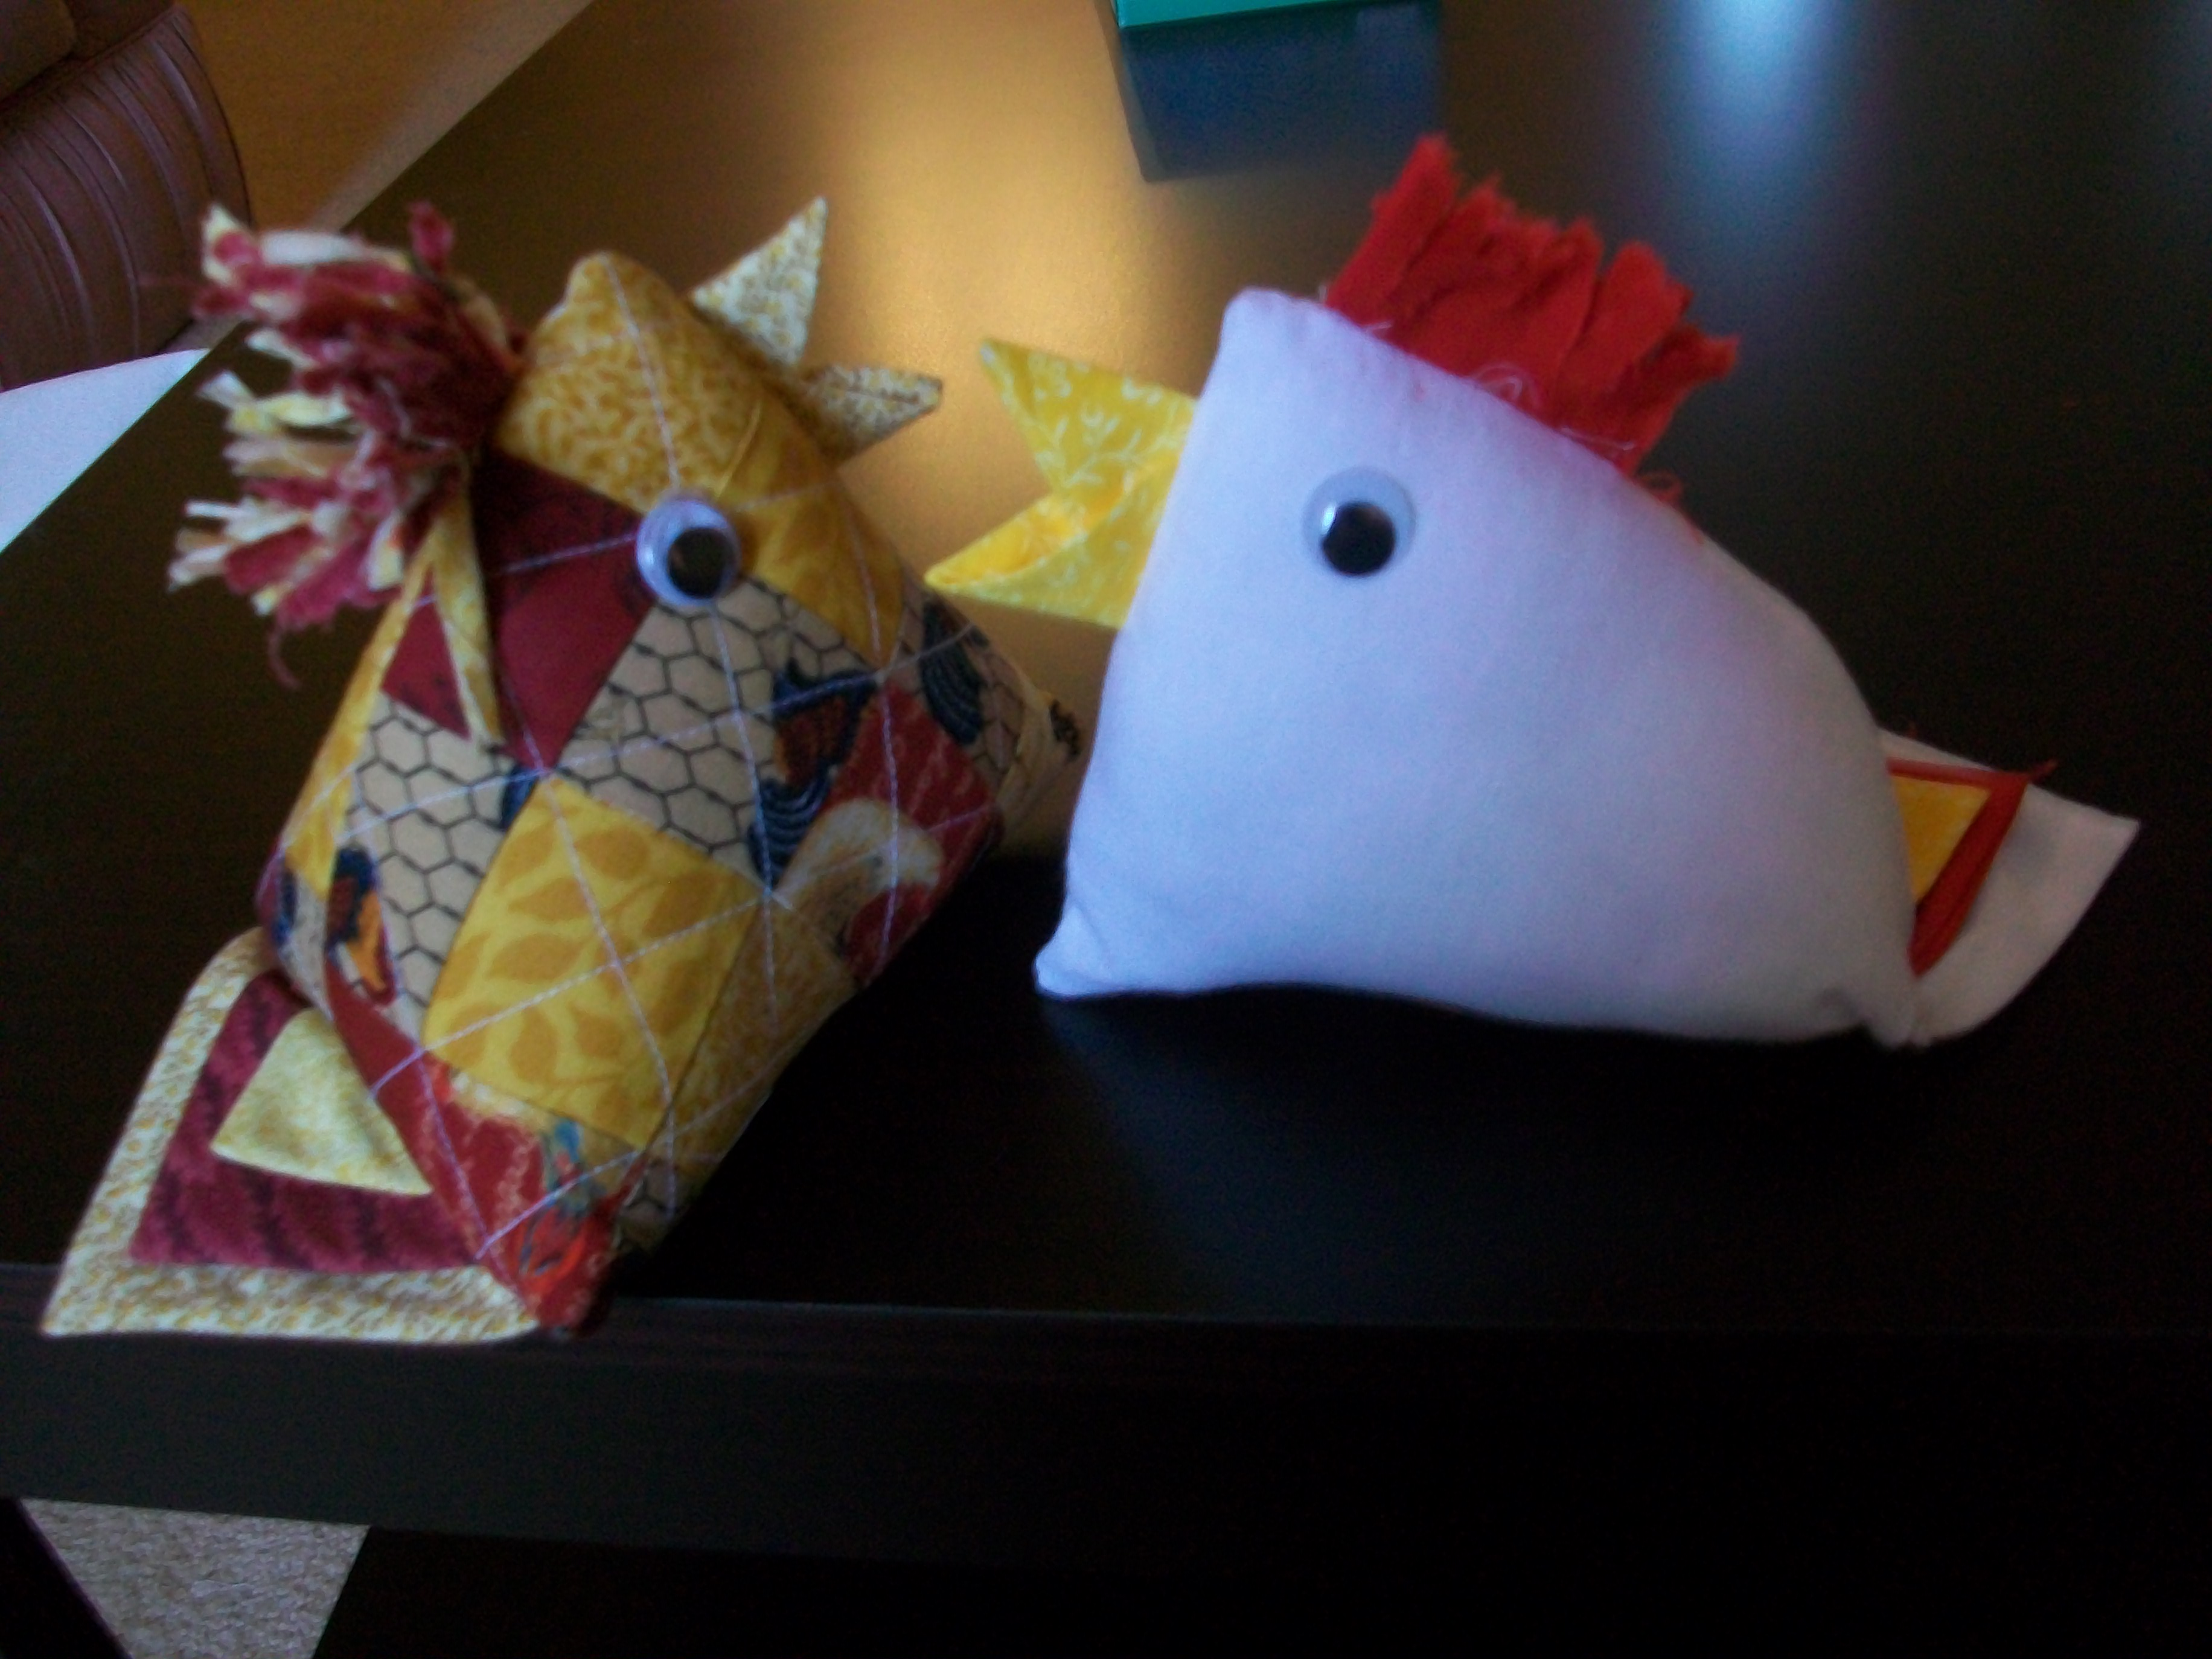 The Chick Pincushion!